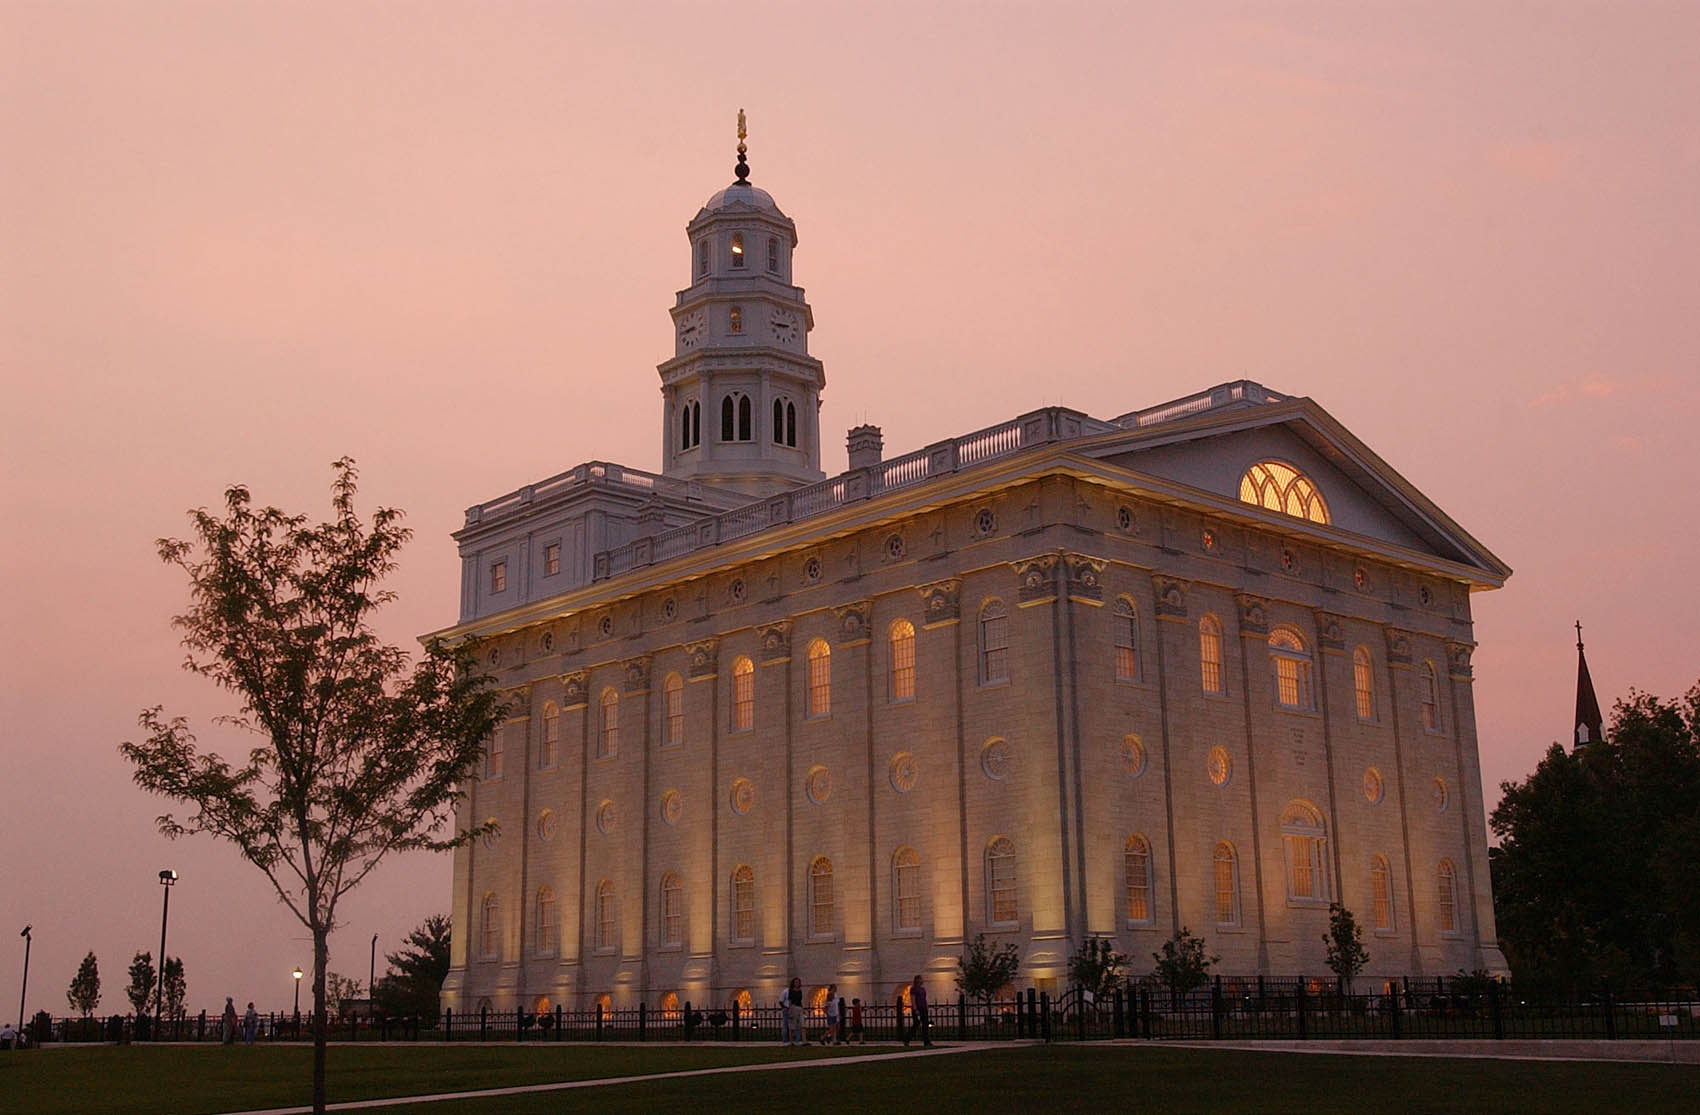 Nauvoo Temple June 22nd, 2002. Allred/photo (Submission date: 06/23/2002)